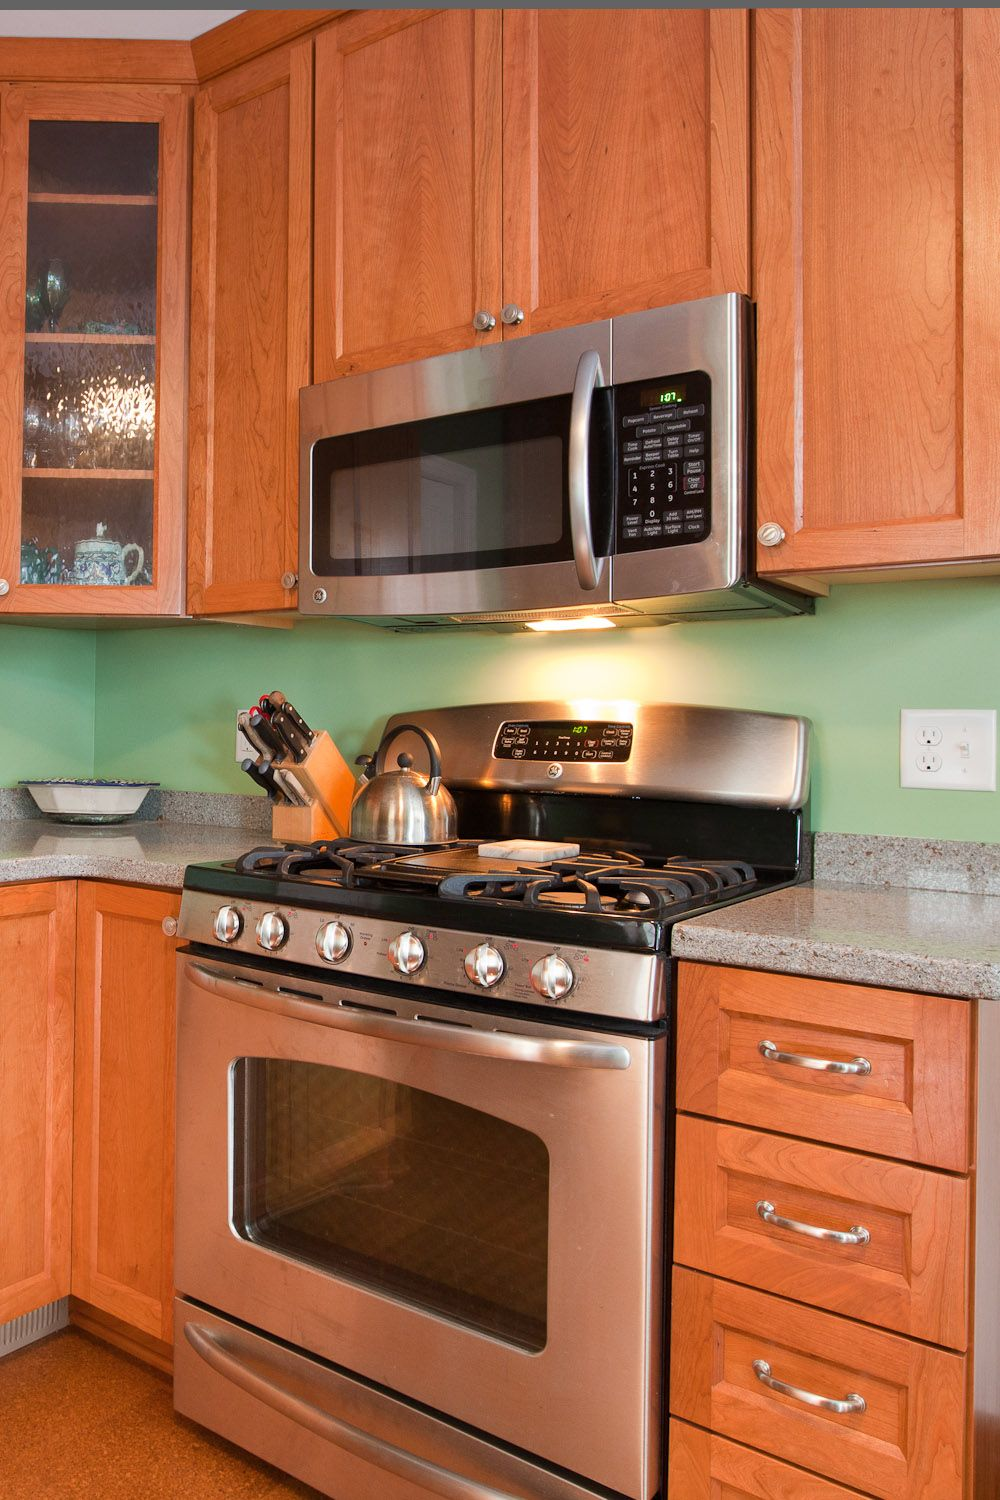 Castle Building And Remodeling Painting kitchen | my portfolio | pinterest | recycled countertops, green